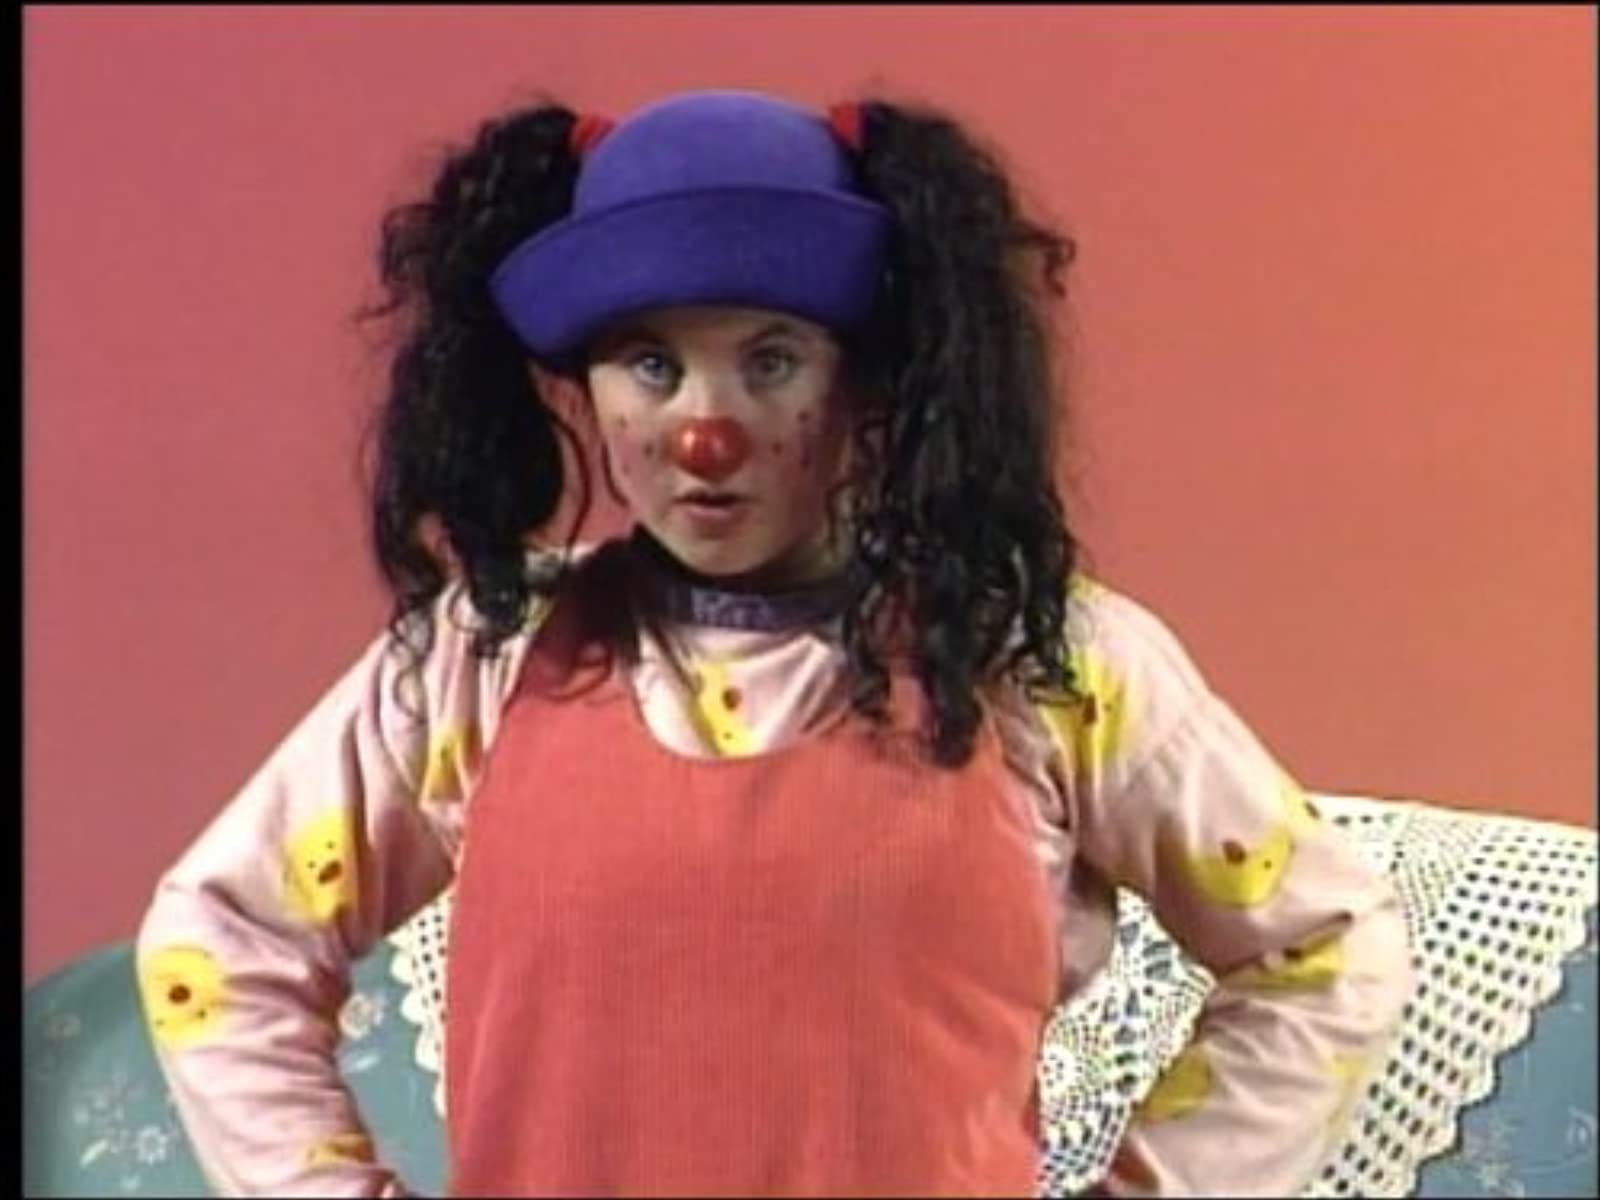 The Big Comfy Couch  Ping Pong Polka (TV Episode) - Alyson Court as Loonette - IMDb  sc 1 st  IMDb & The Big Comfy Couch